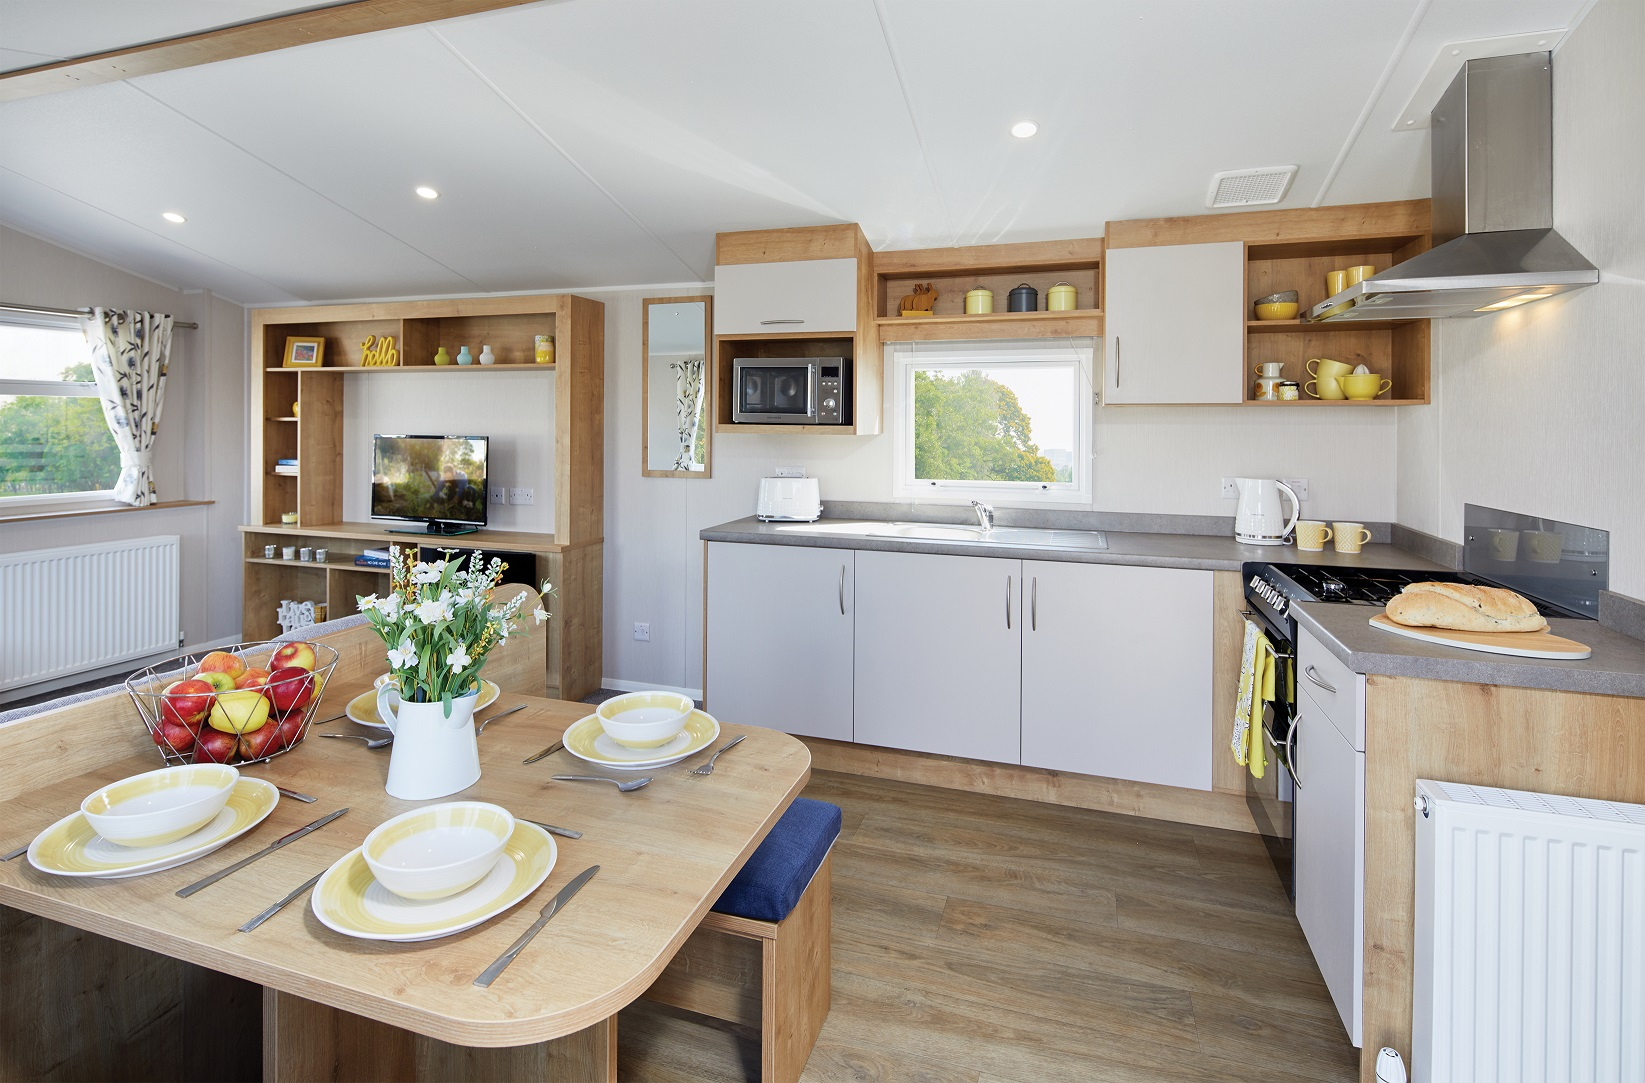 Willerby Kelston: Static Caravans and Holiday Homes for Sale on Caravan Parks, Belford, Northumberland Large Image 1